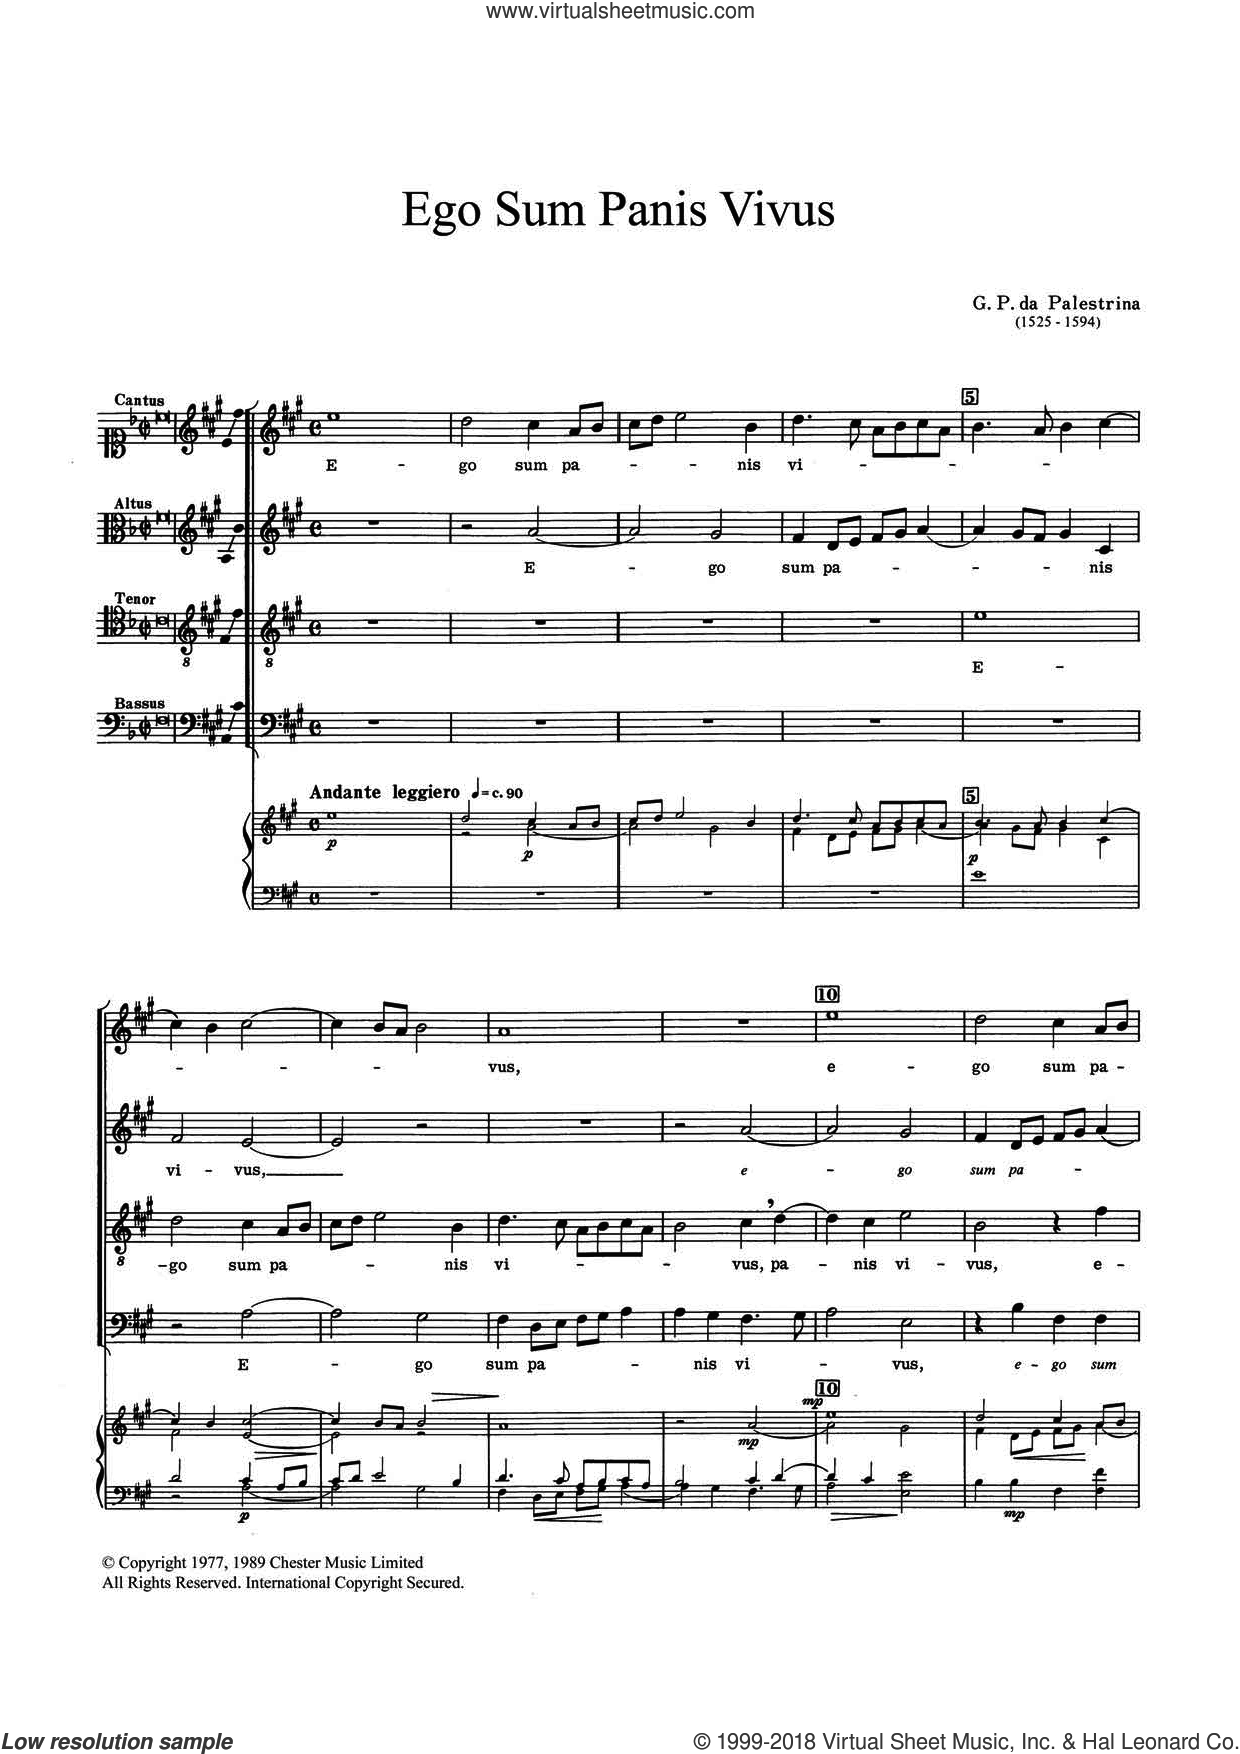 Ego Sum Panis Vivus sheet music for choir by Giovanni Palestrina, classical score, intermediate. Score Image Preview.